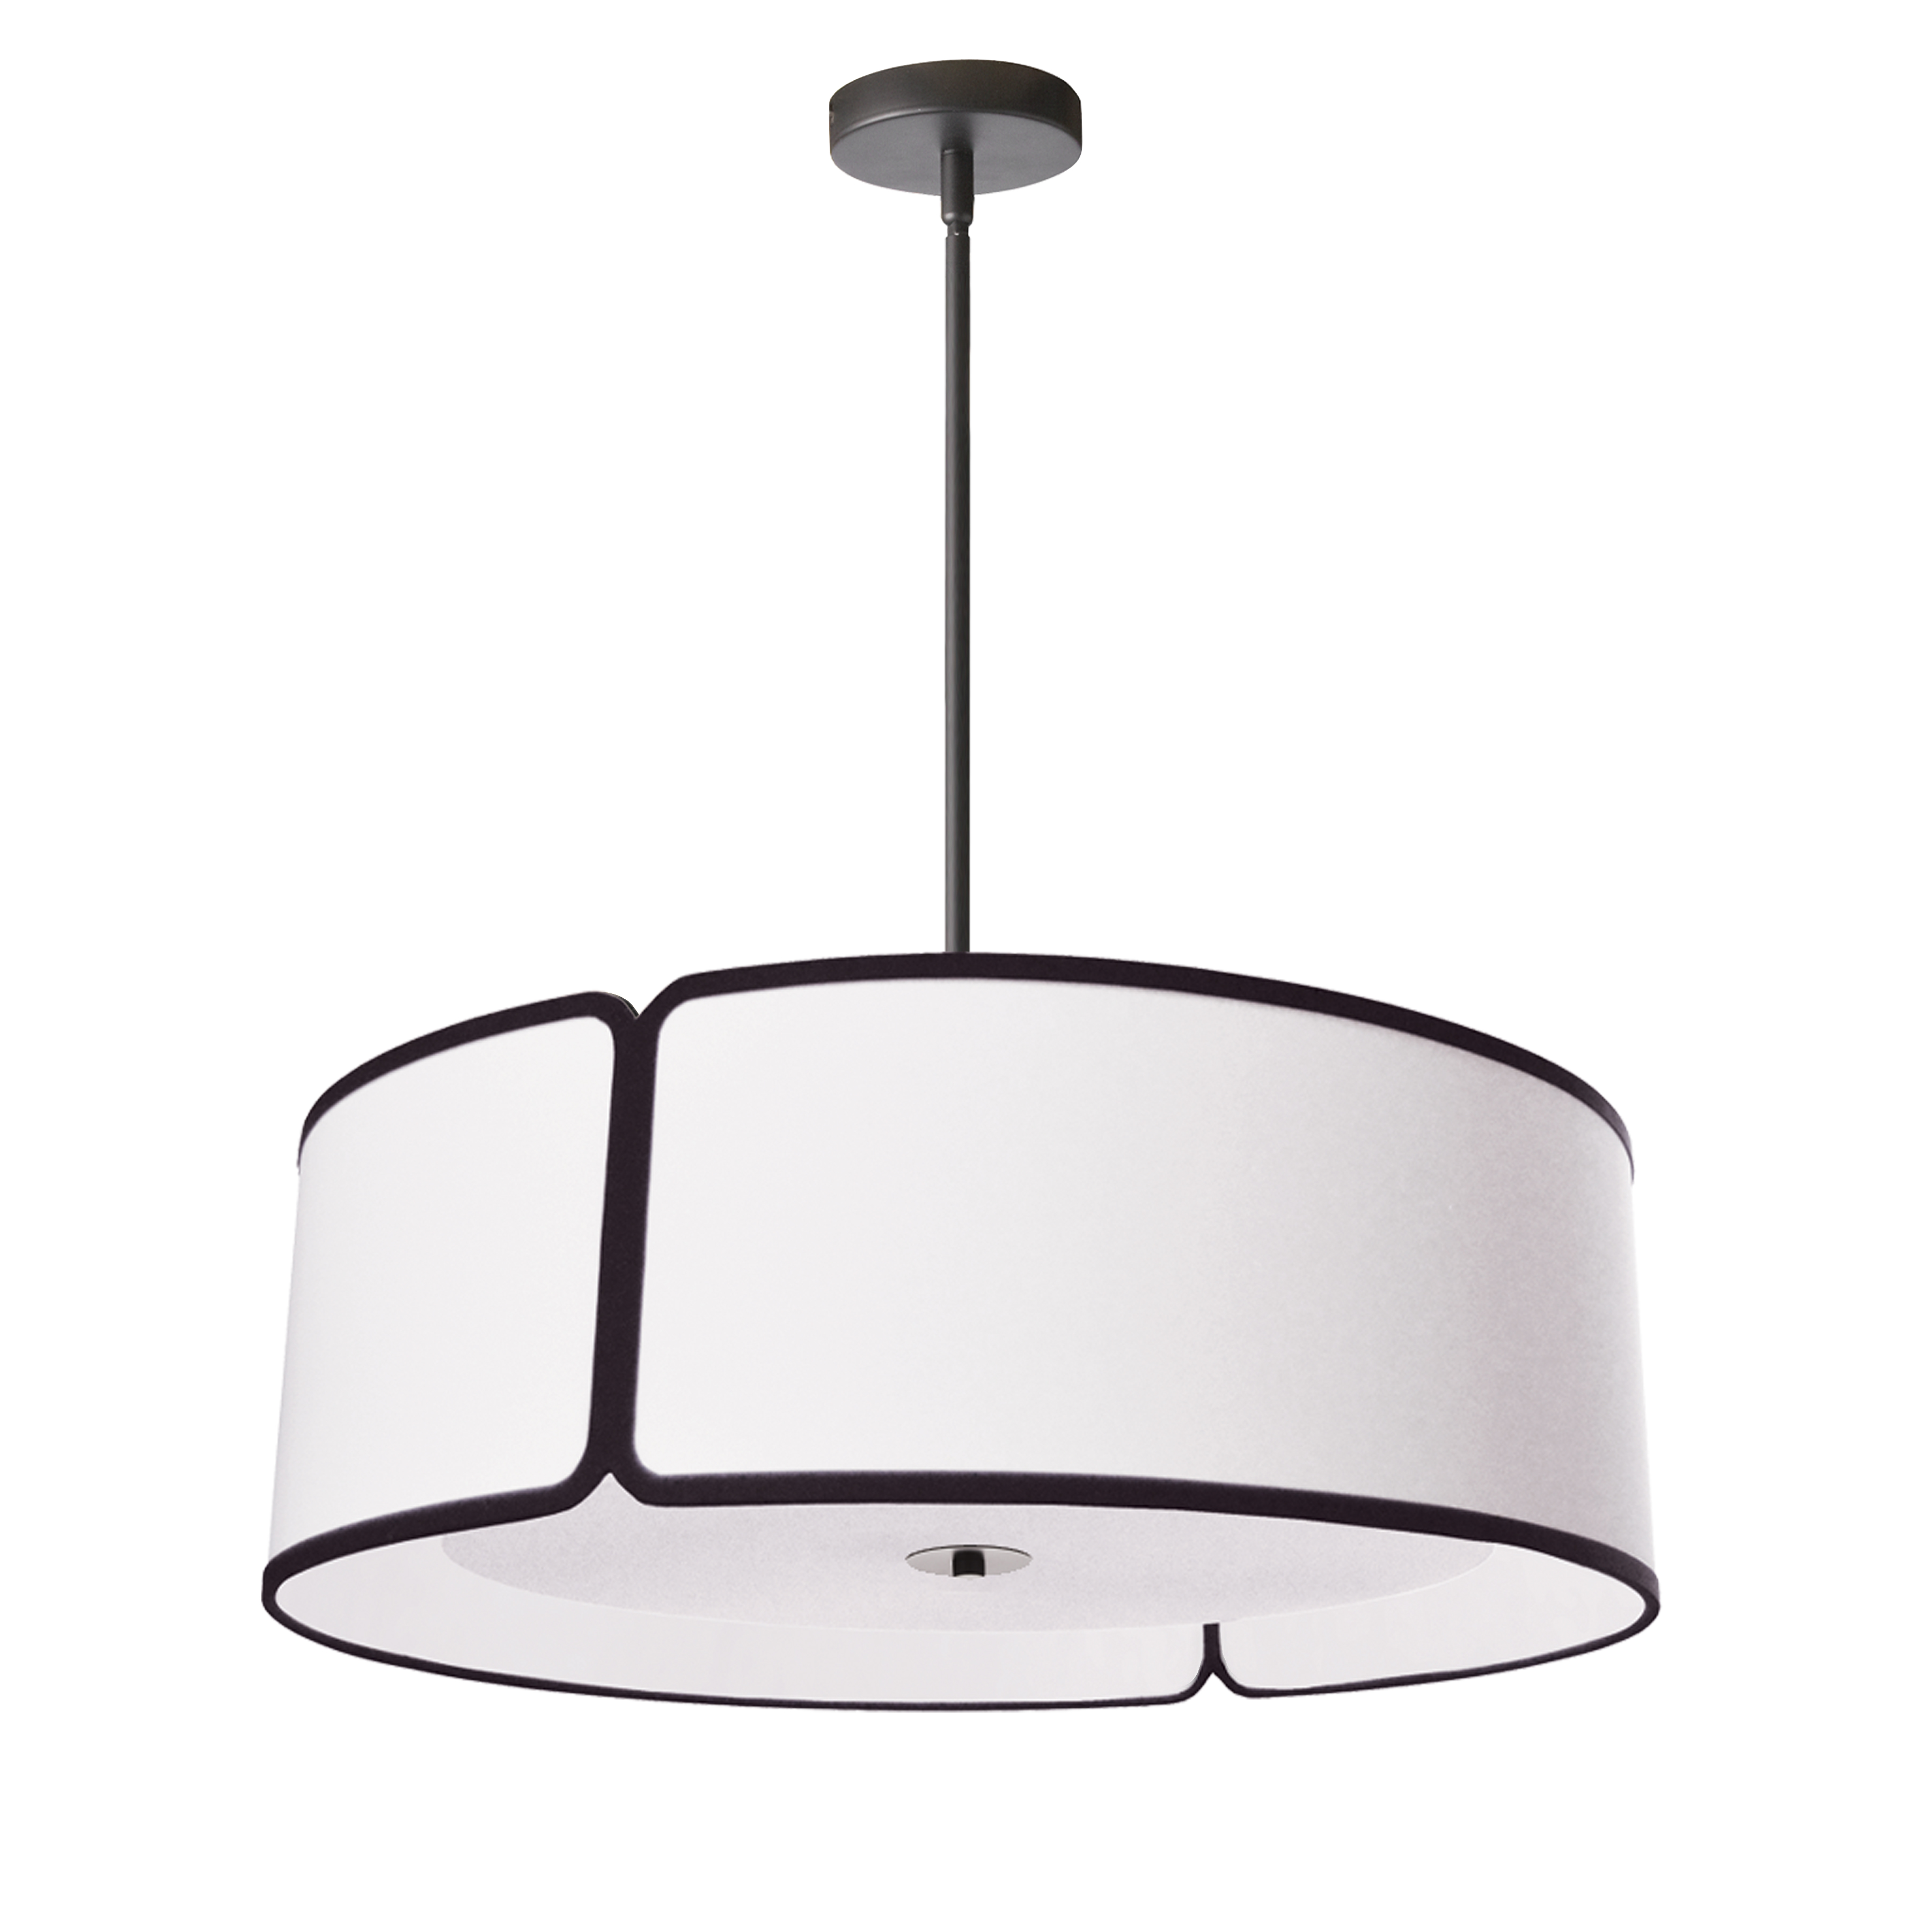 4 Light Black Notched Drum Pendant with White Shade and White Diffuser